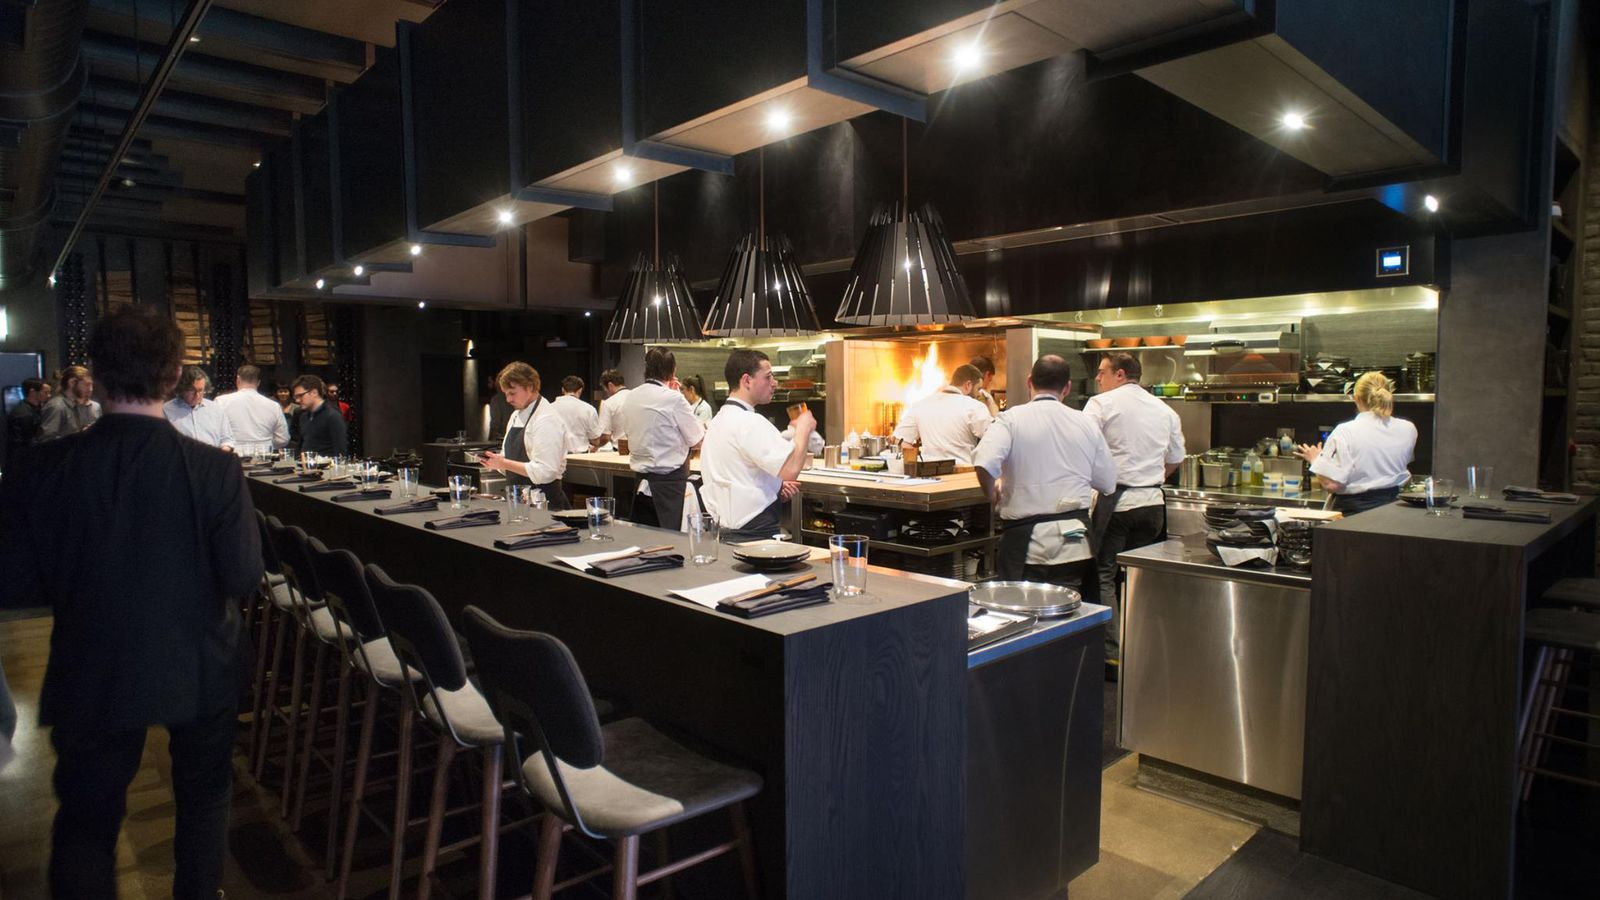 roister first look  alinea group reveals highly-anticipated inside peek